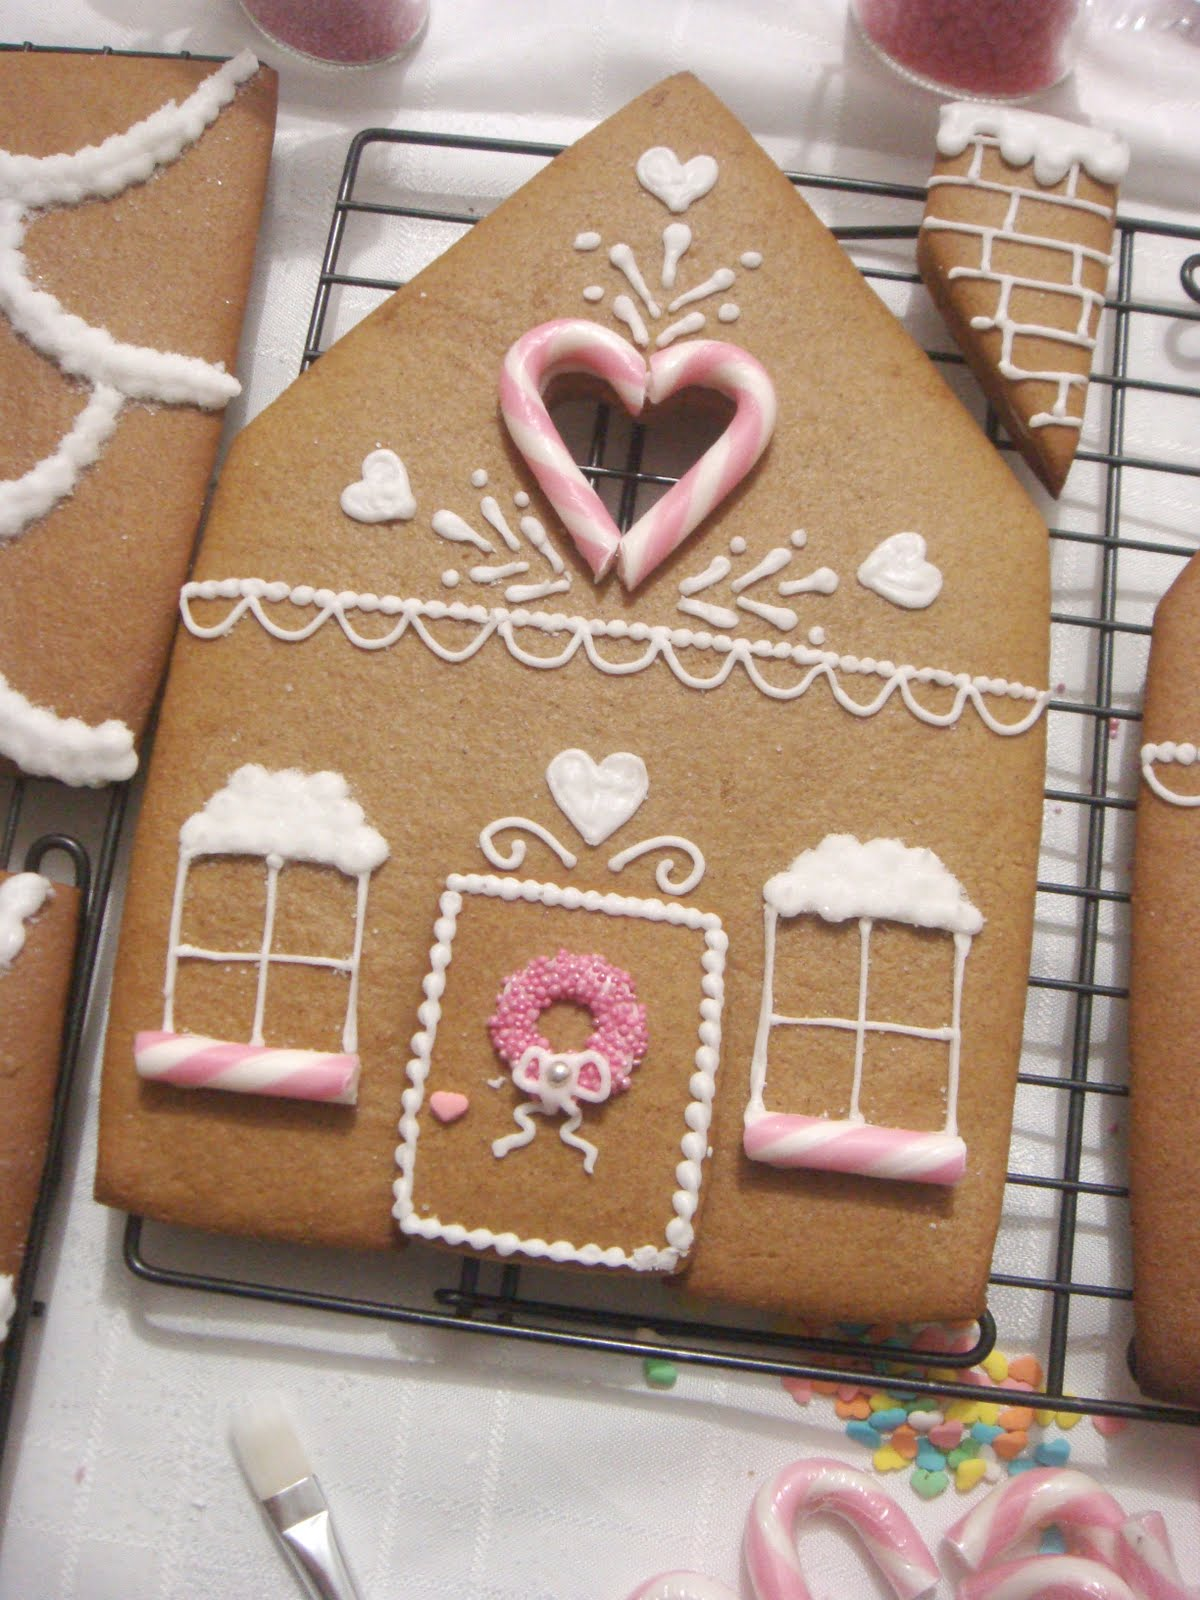 butter hearts sugar gingerbread house part 2 decorating and building. Black Bedroom Furniture Sets. Home Design Ideas